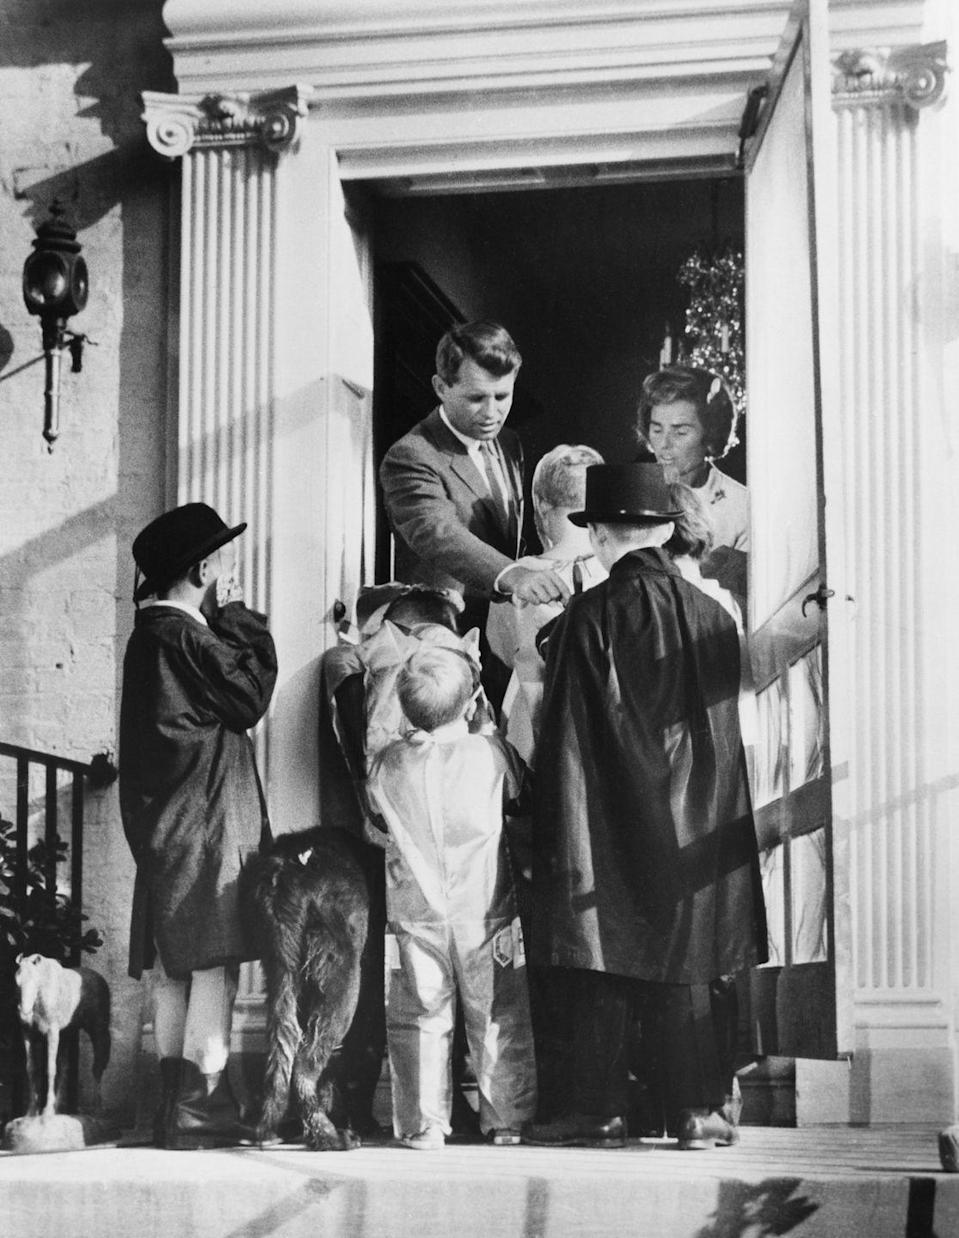 """<p>Attorney General Robert F. Kennedy and his wife, Ethel, give out Halloween candy to kids during a """"Trick of Treat for UNICEF"""" event. </p>"""